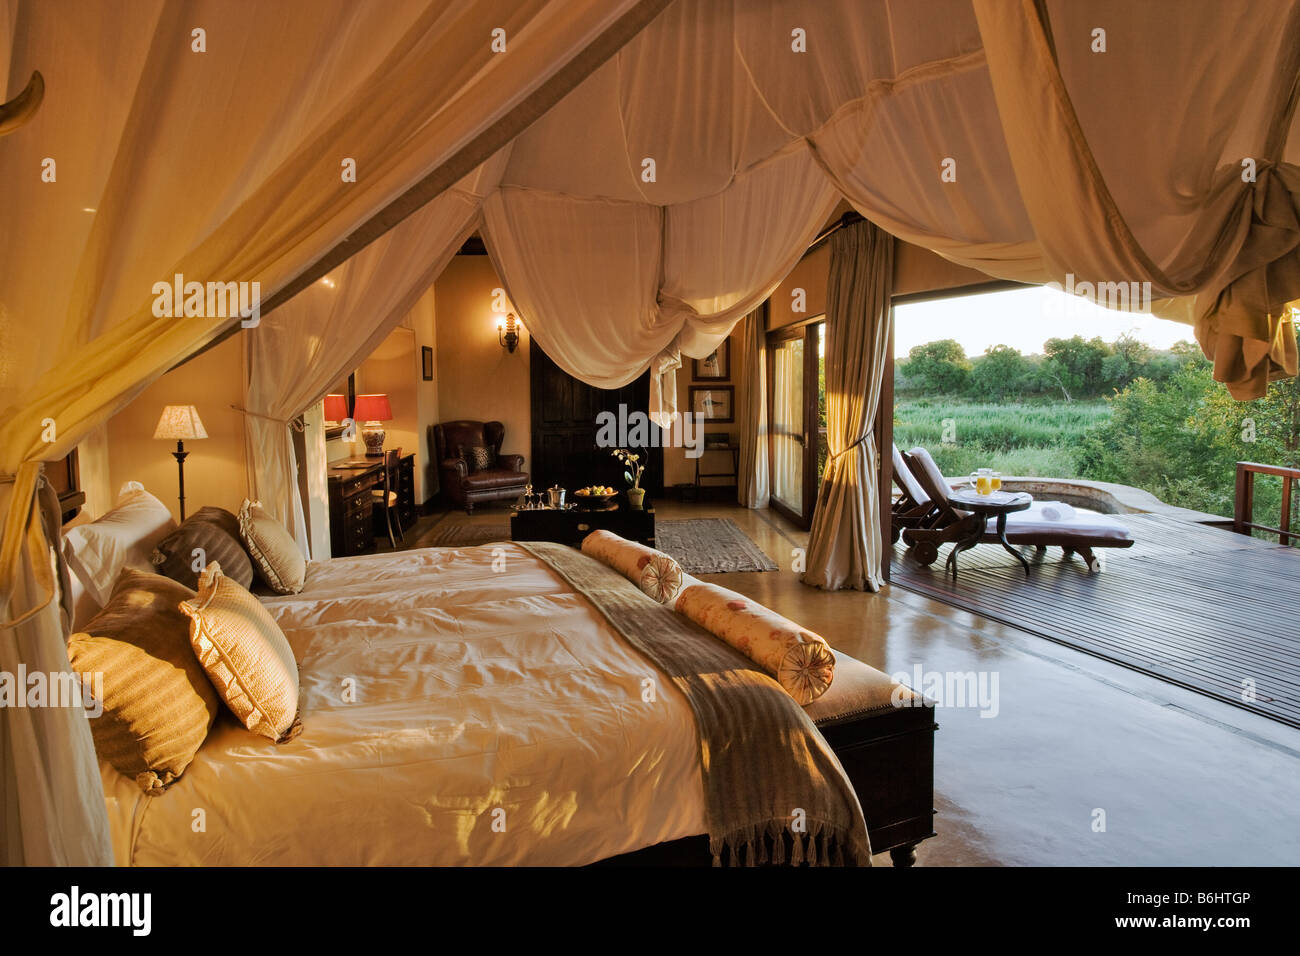 Bedroom in Tinga Legends Private Game Lodge situated in a concession area within the Kruger National Park South - Stock Image